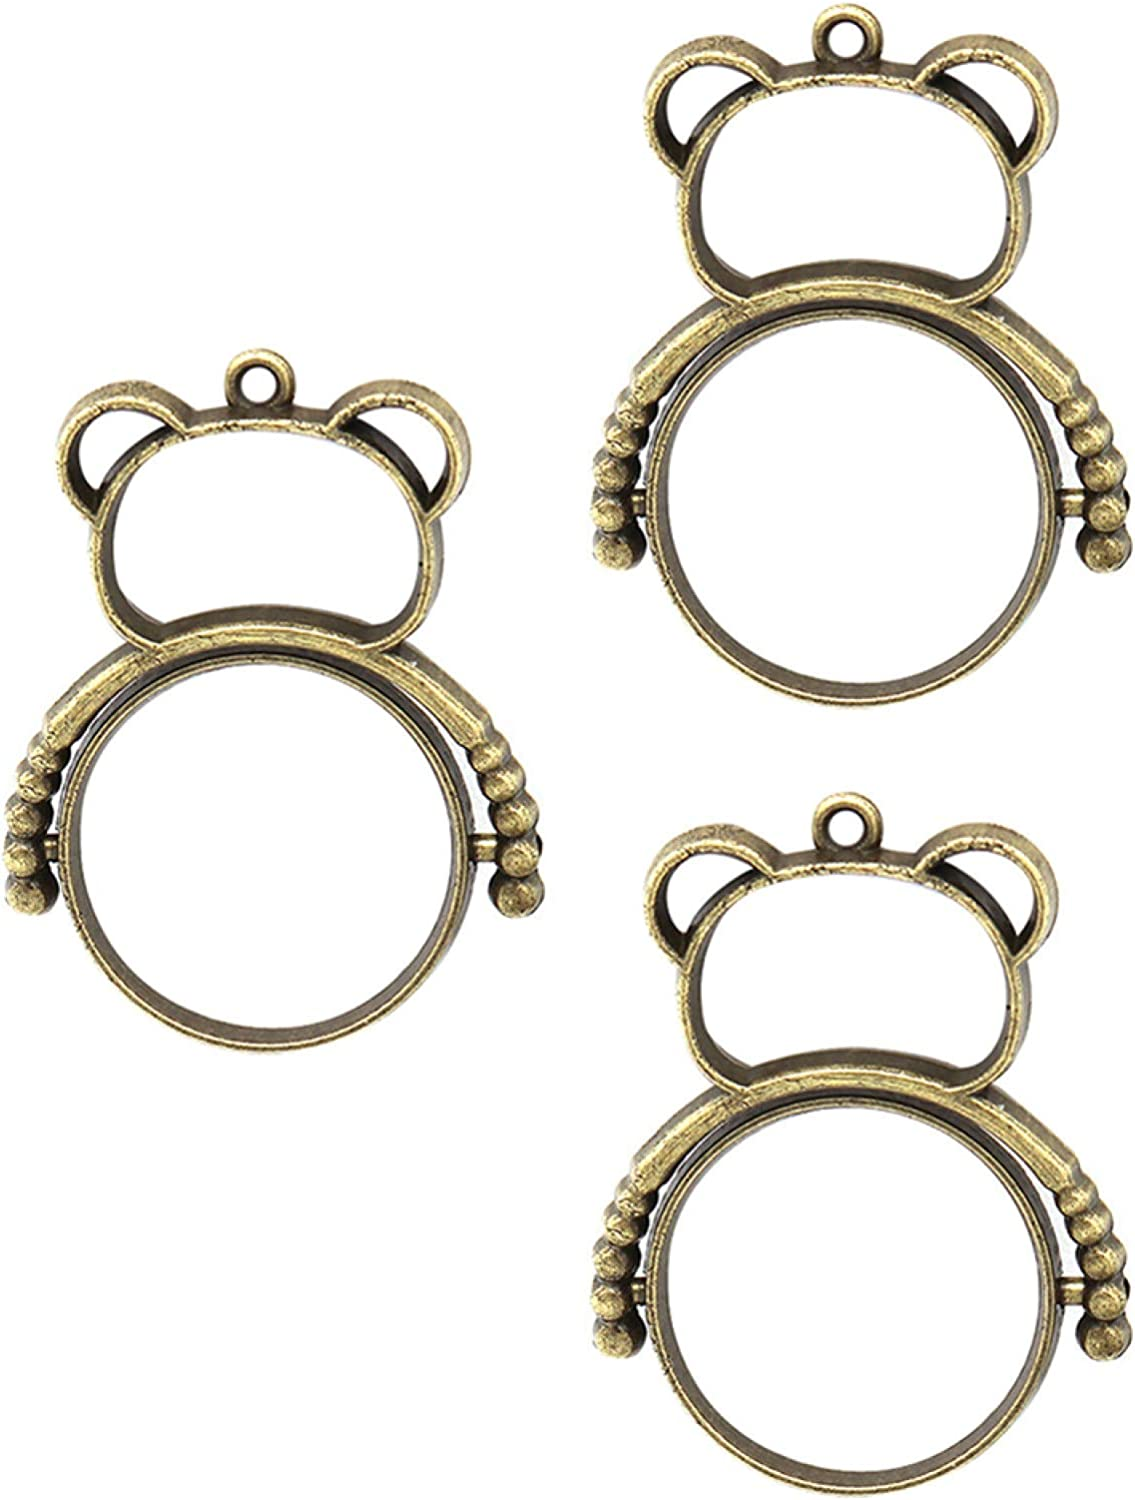 erDouckan Women Girl Fashion Summer Spring Jewerly Necklace 3Pcs 360 Degree Rotation Epoxy Alloy Frame DIY Bear Model Jewelry Accessories